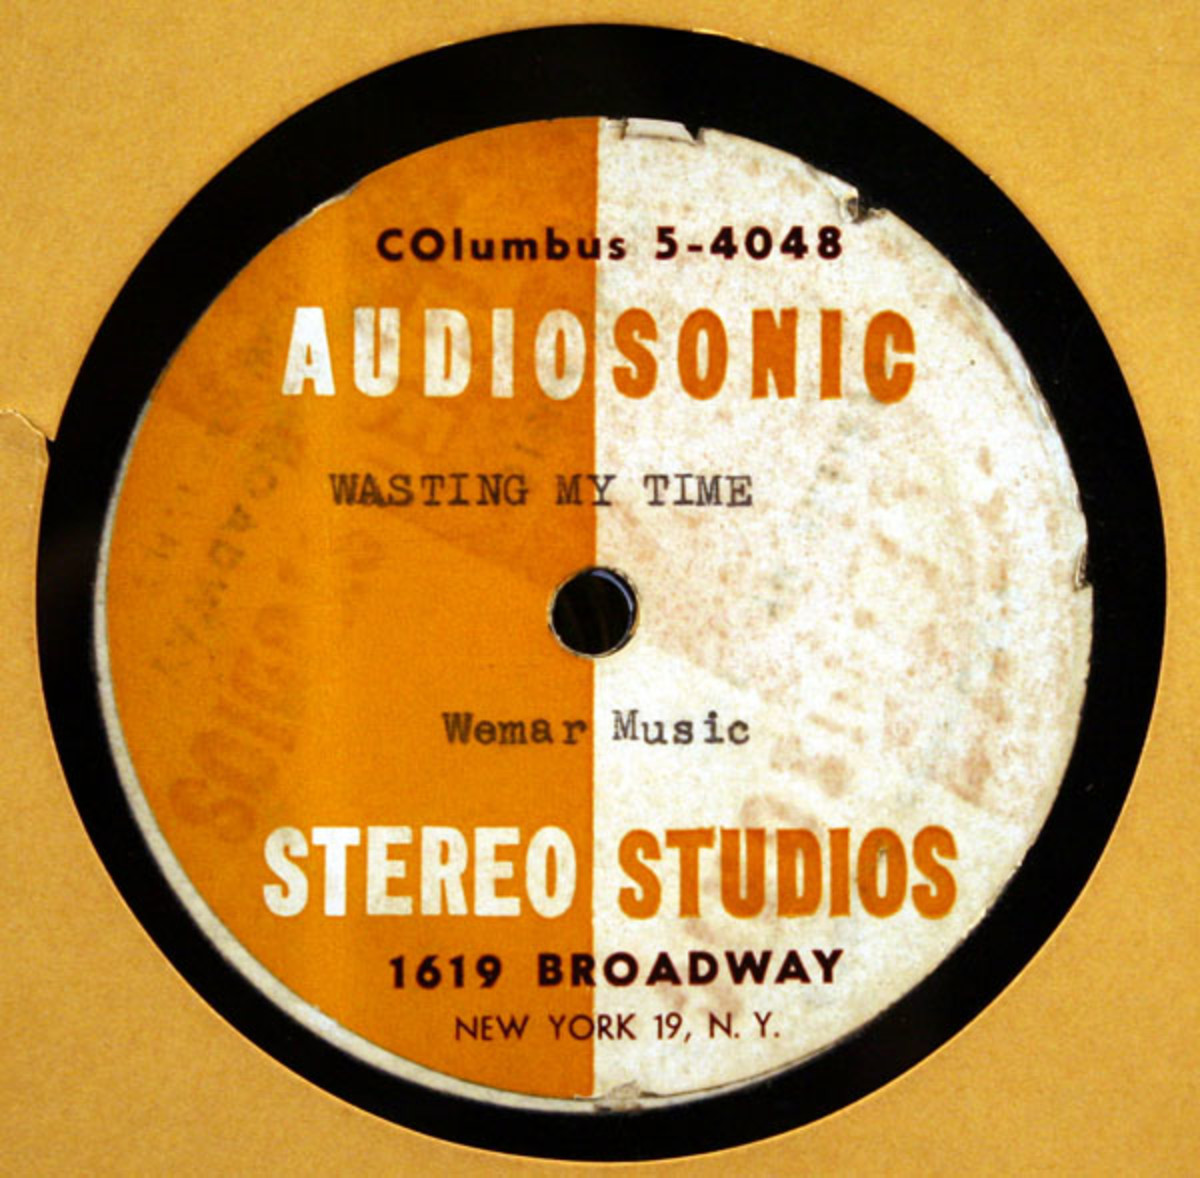 The song 'Wasting My Time' was pressed on a 10-inch acetate (78 RPM) and has aged reasonably well. Courtesy of Backstage Auctions